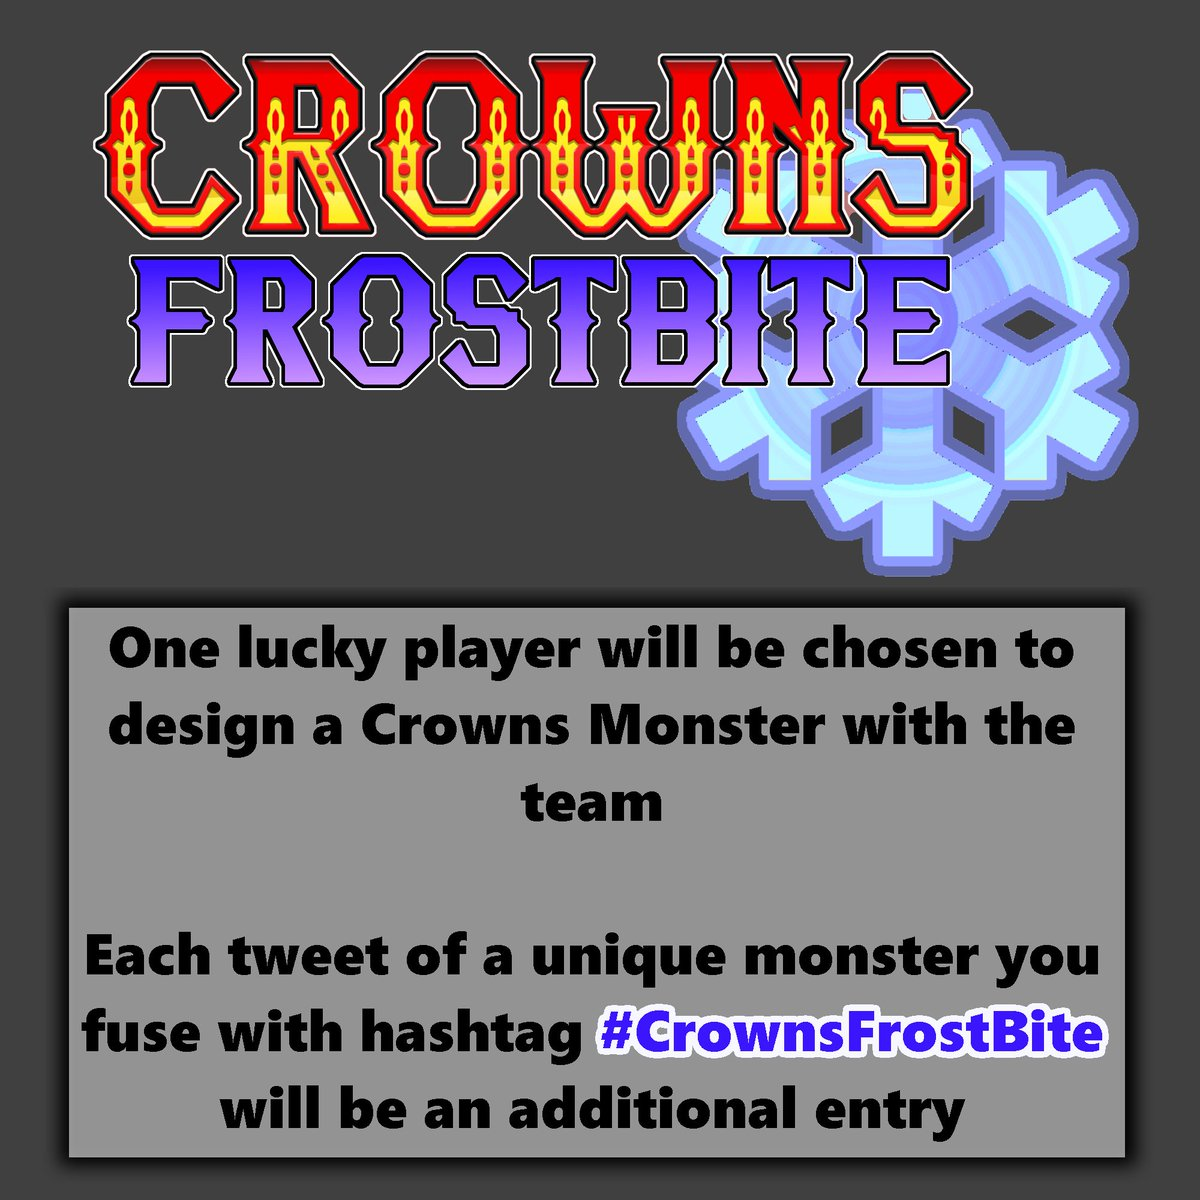 Contest guidelines  #gamedev #indiedev #gamer #gaming #pcgaming #games #madewithunity #pixelart #demo #contest<br>http://pic.twitter.com/JyZiQdOfoQ